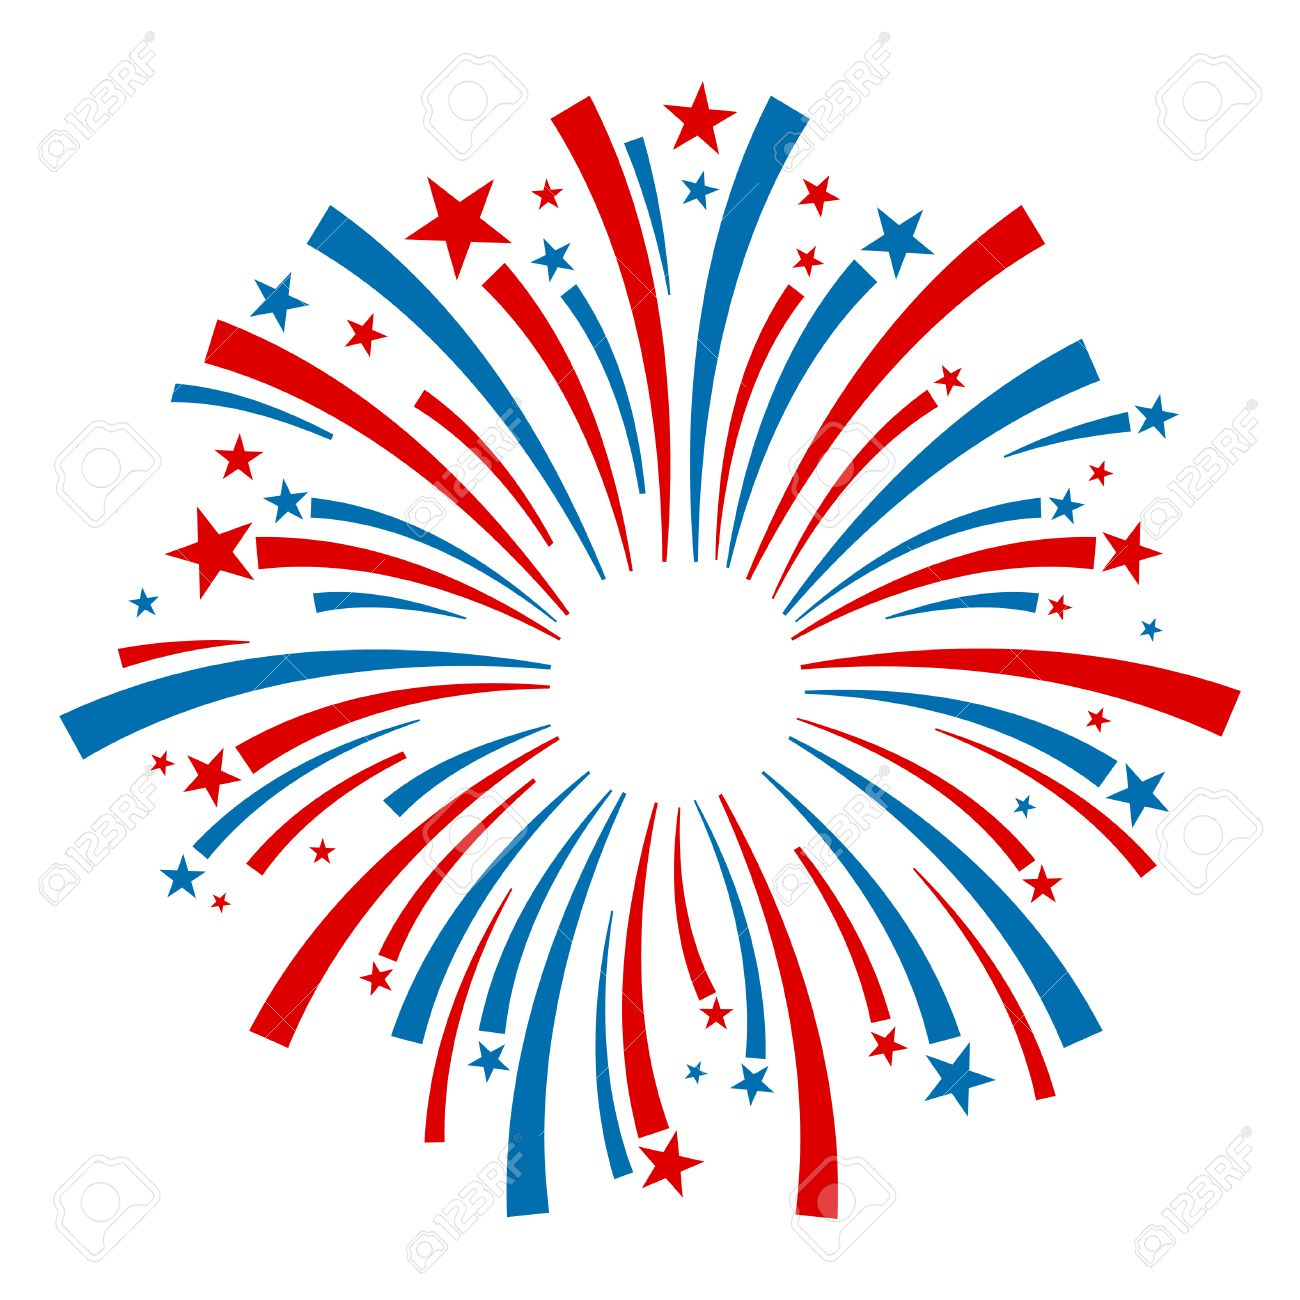 fireworks vector icon royalty free cliparts vectors and stock rh 123rf com fireworks vector free download fireworks vector image